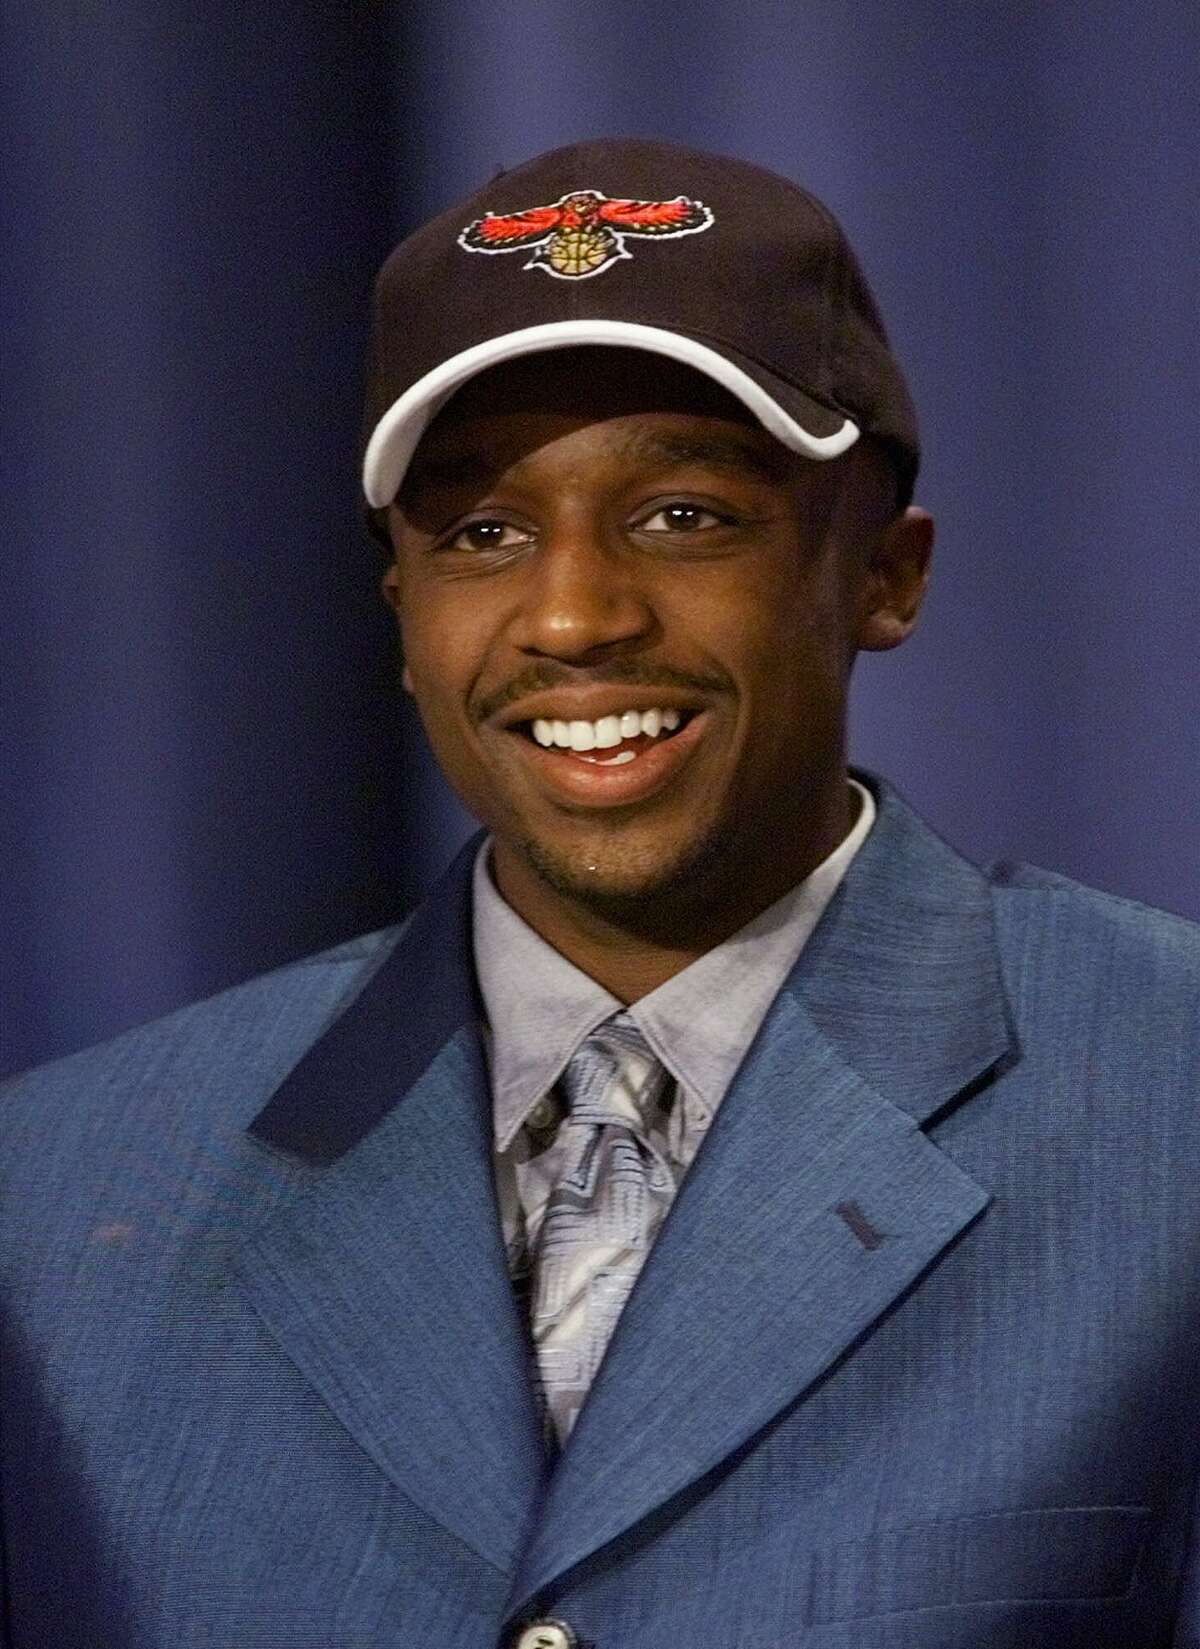 Atlanta: Jason Terry (10th overall, 1999) The Hawks' draft history isn't exactly littered with inspired selections, but Terry at No. 10 in 1999 was a good choice. He's enjoyed a long, solid career, especially after being traded to Dallas in 2004.